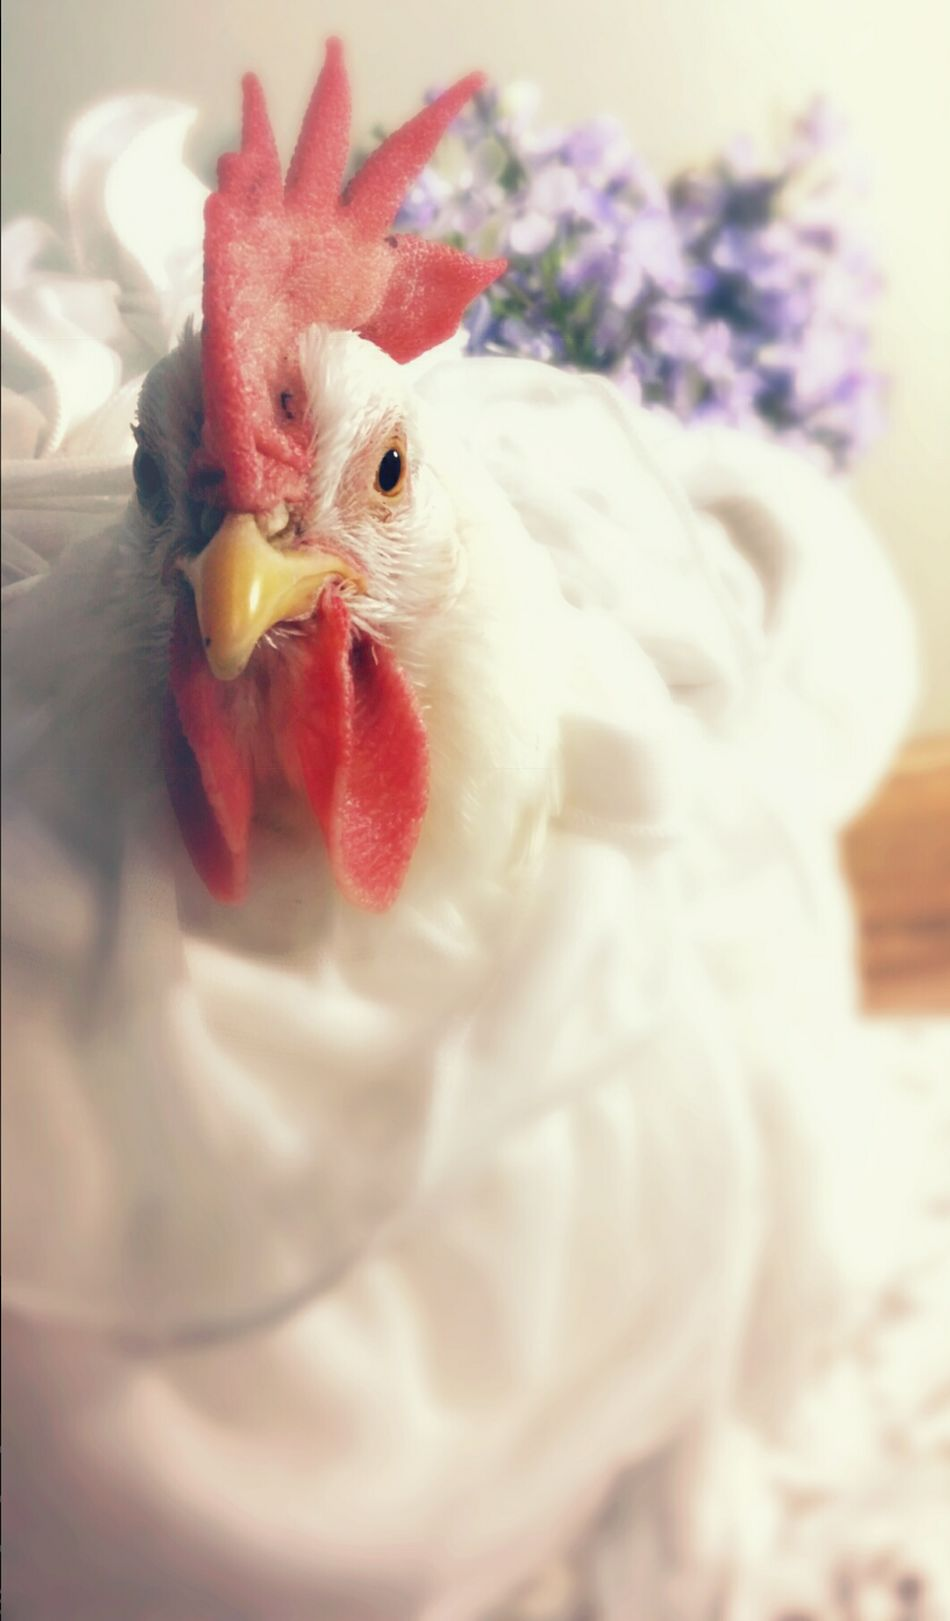 Chicken - Bird Domestic Animals Livestock Bird Rooster One Animal FUNNY ANIMALS Funny Pets Pet Love Petslife Pet Photography  Animallovers Pets Of Eyeem Birds Animal Photography Pet Photography  Petstagram Birds Of EyeEm  Birds🐦⛅ Birds_collection Indoors  Funny Chickens Chickens Of Eyeem Chickens >.<